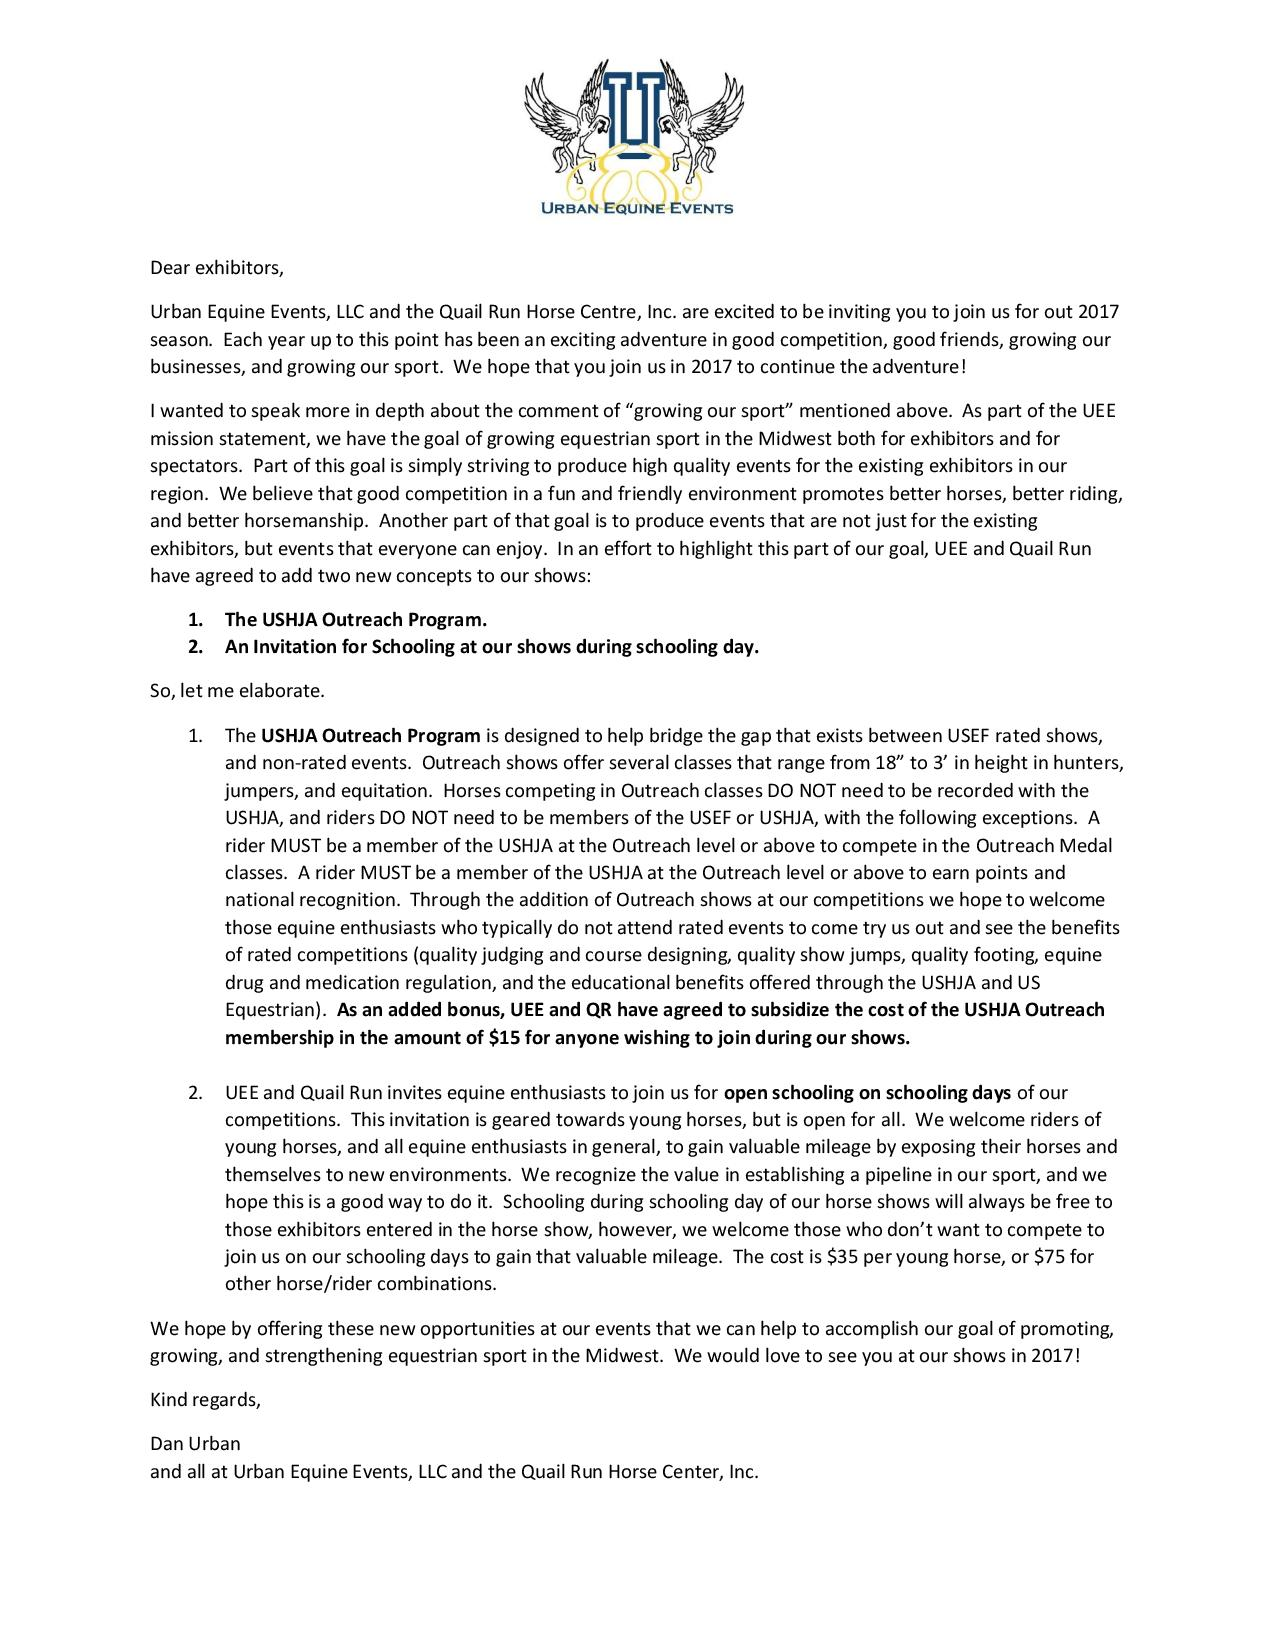 Outreach Schooling Letter 3.21.17 page 001